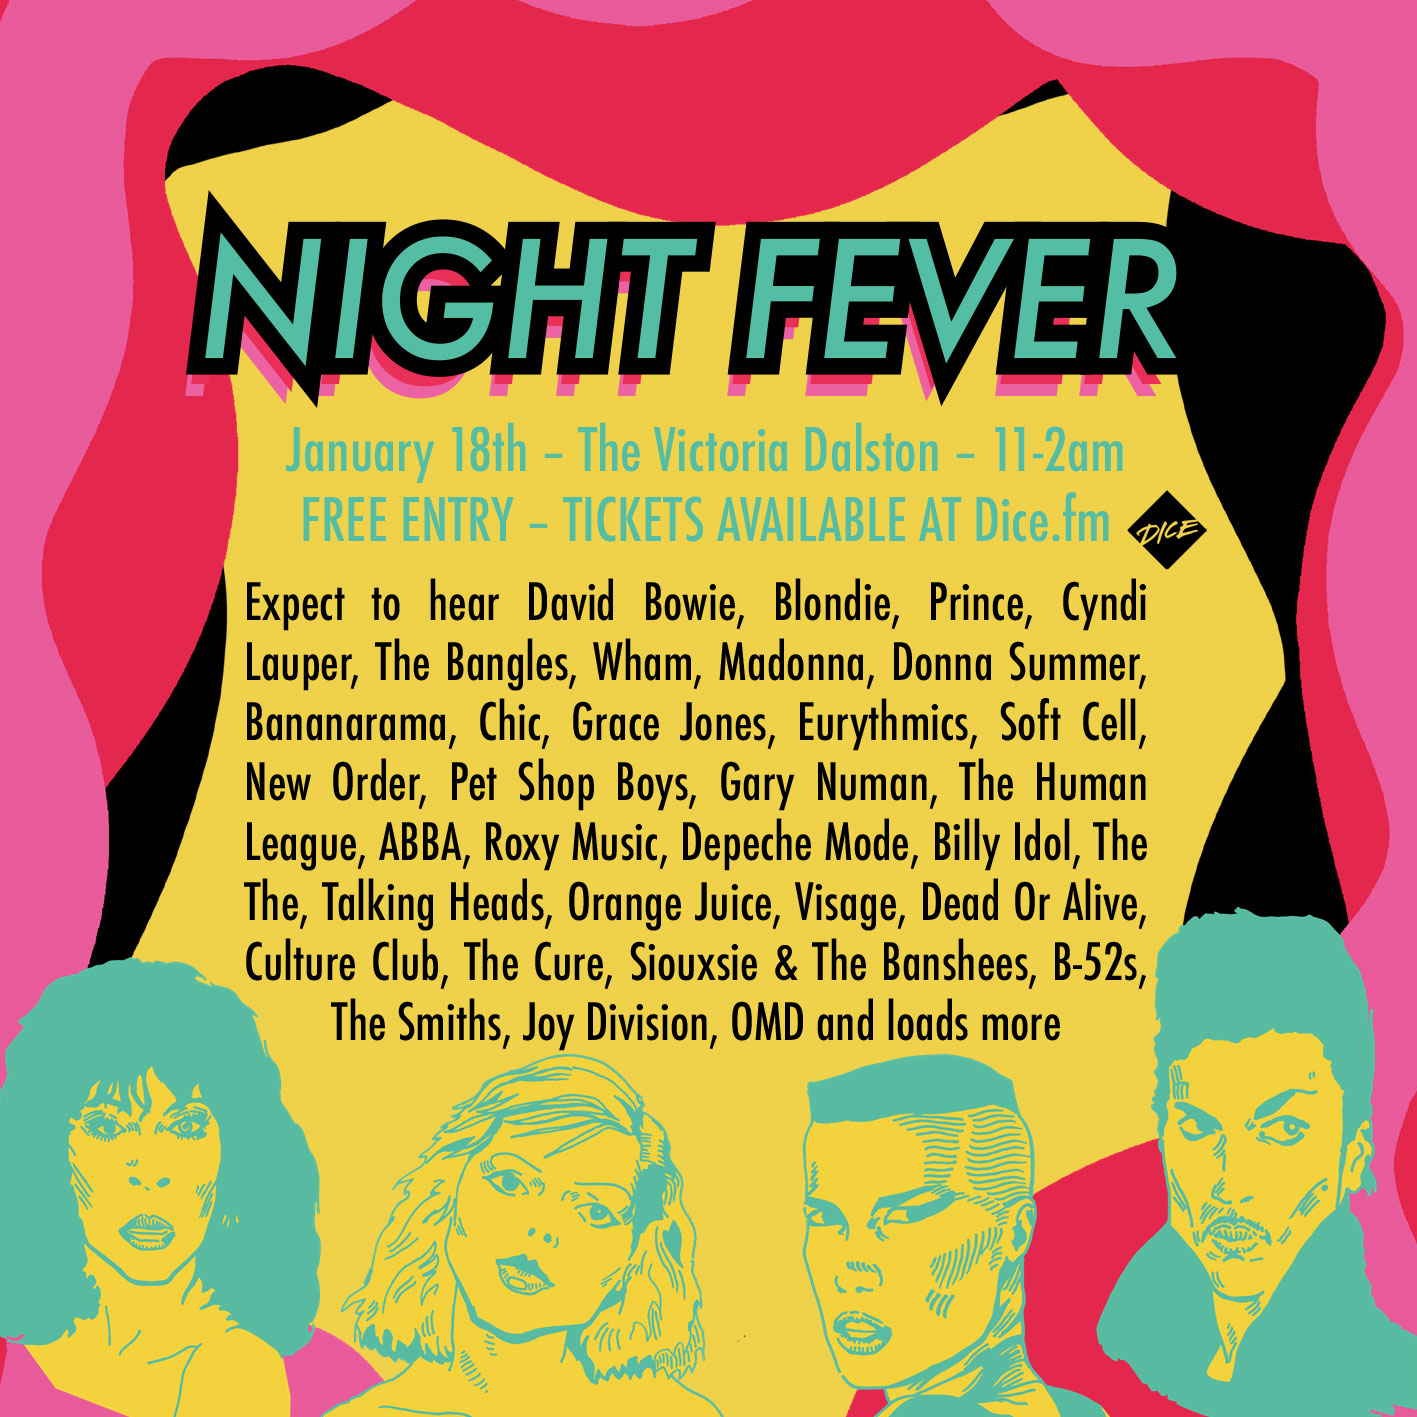 Night Fever at The Victoria promotional image